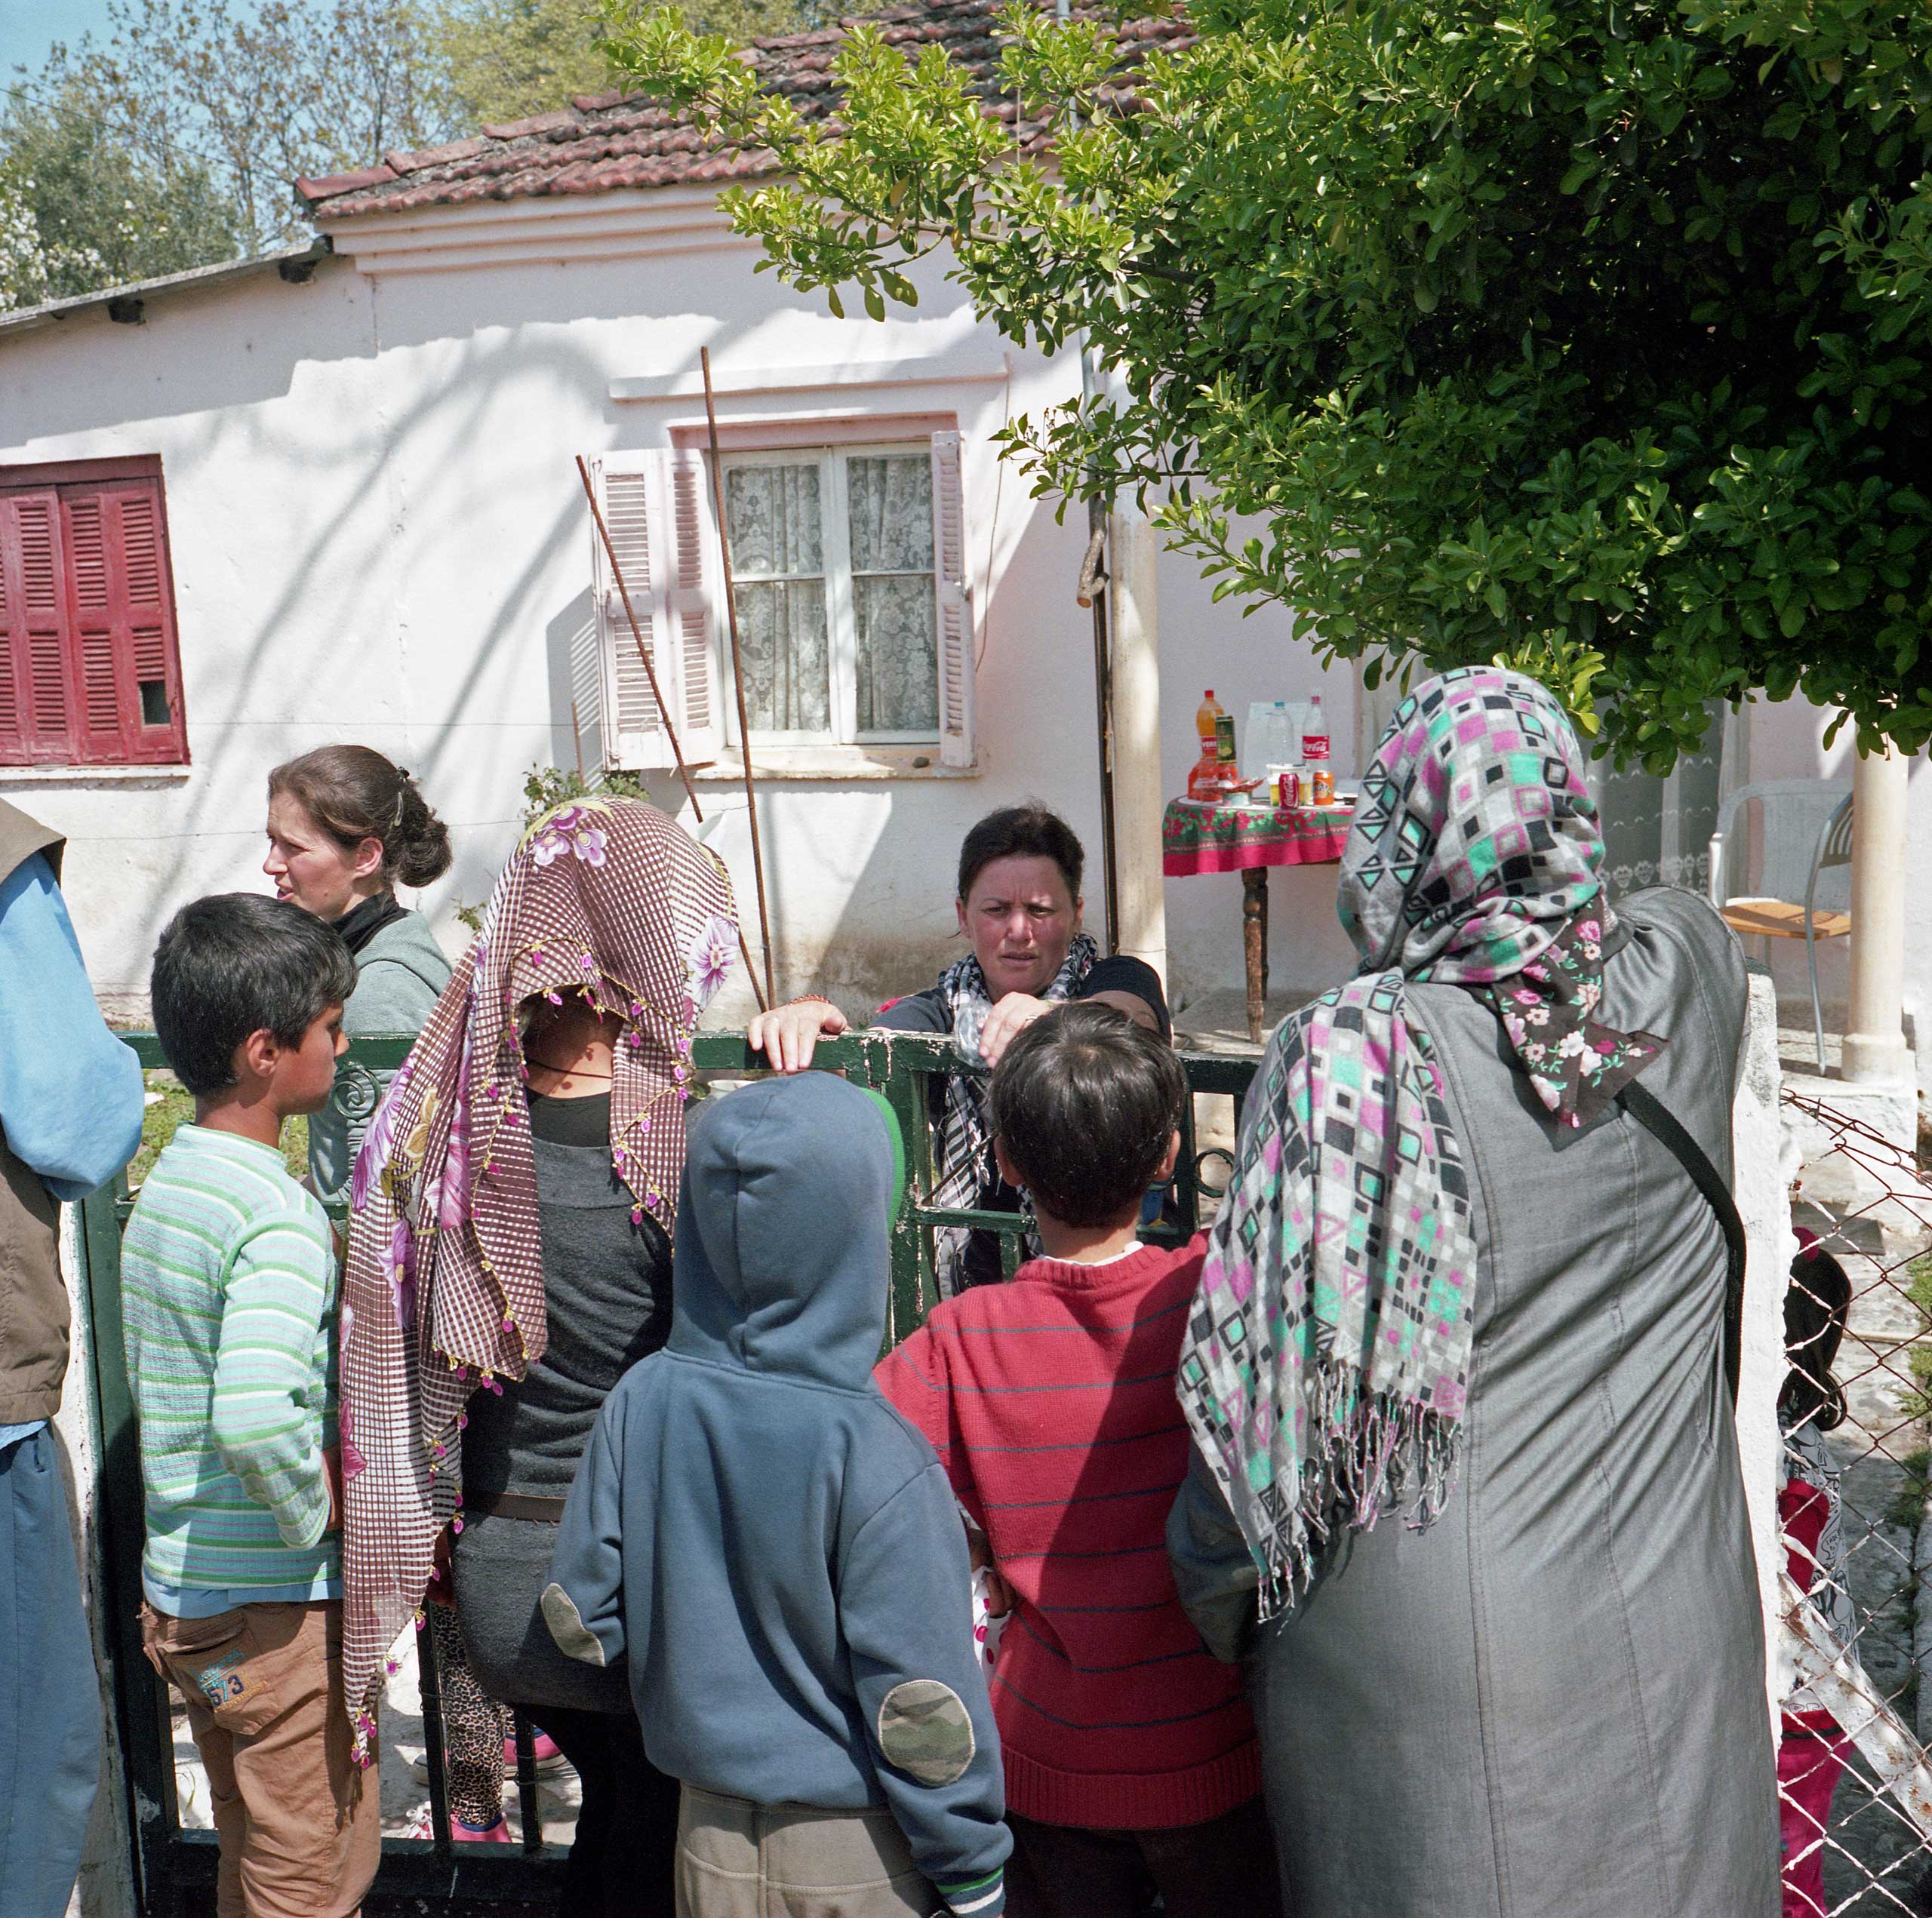 Members of an Albanian family, themselves refugees, sell food and drinks to the newly arrived refugees from the porch of their home in Idomeni, Greece. April 2016.